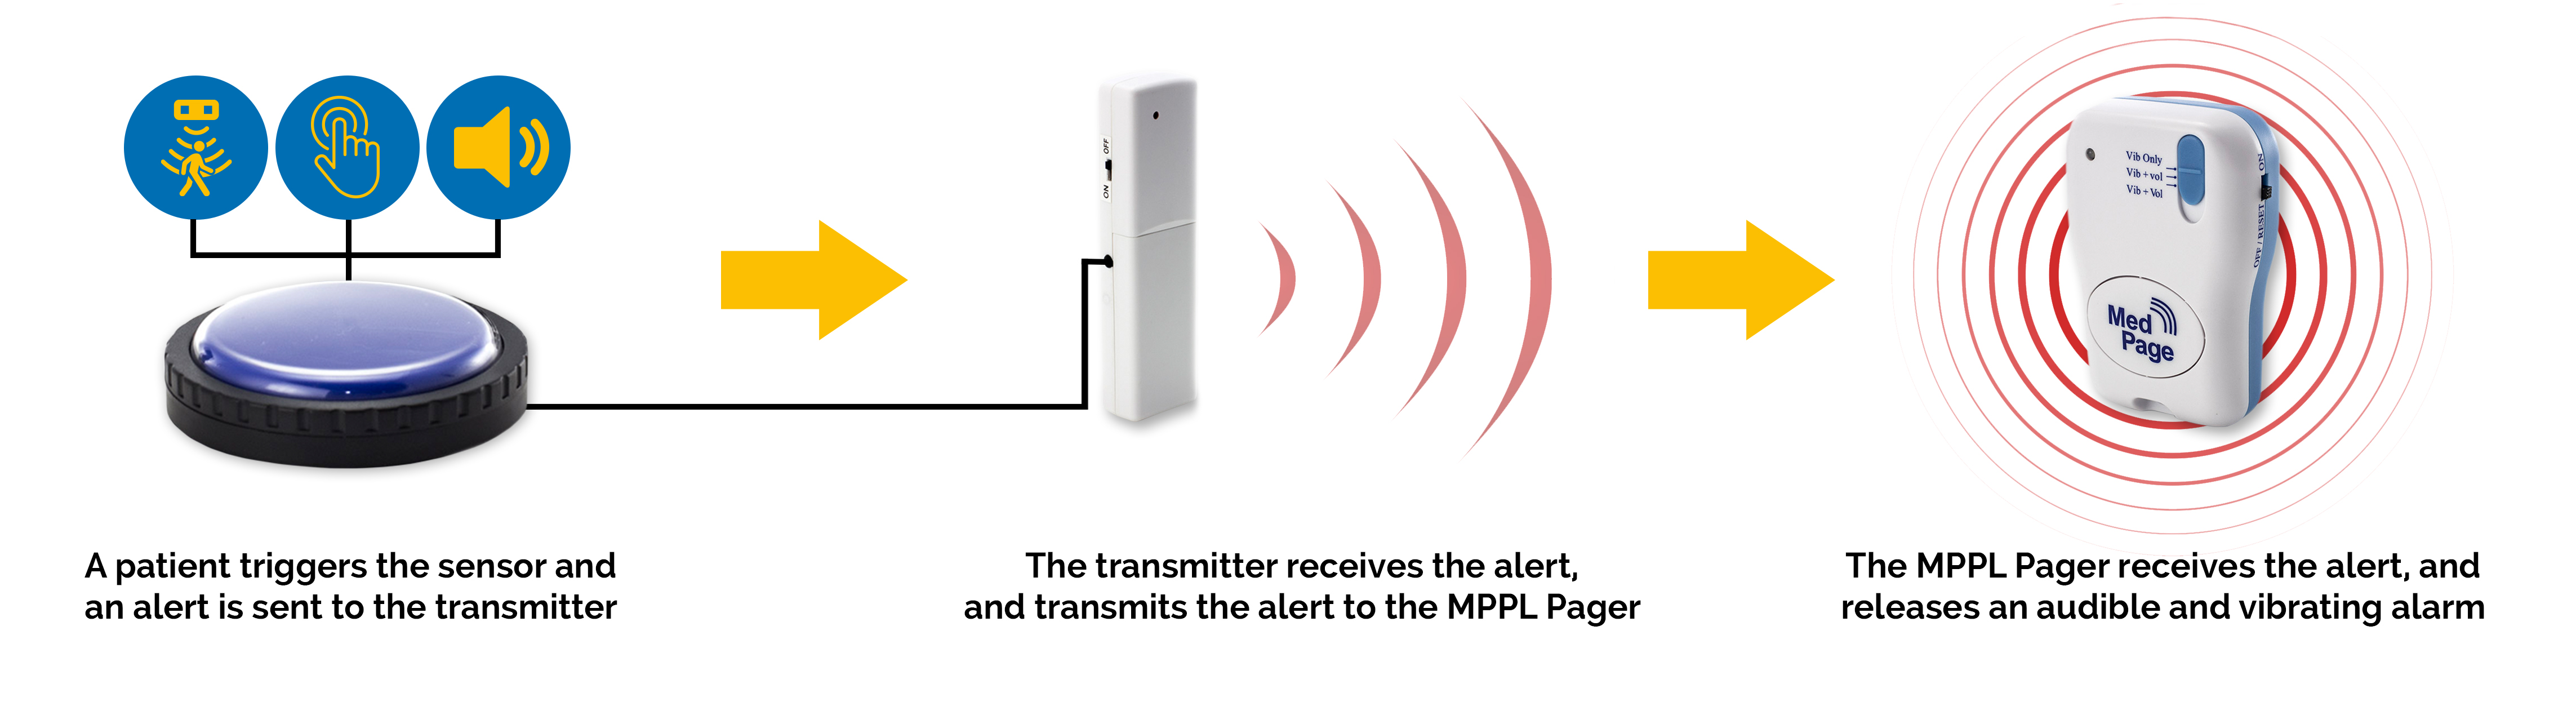 How the MPPL Alarm System Works